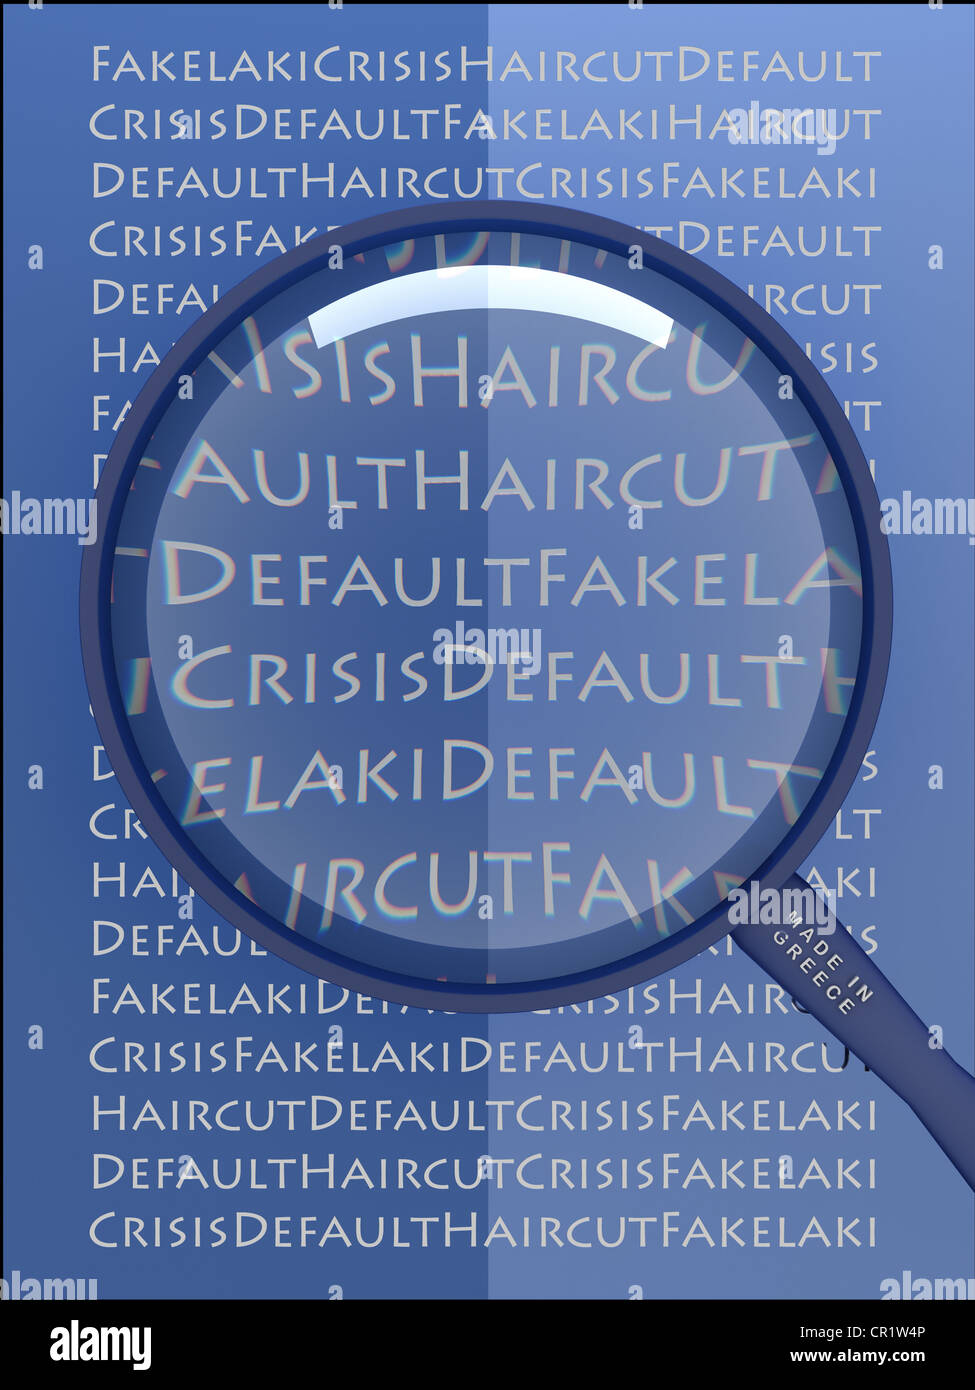 Words in Greek script through a magnifying glass, symbolic image for the Greek debt crisis - Stock Image